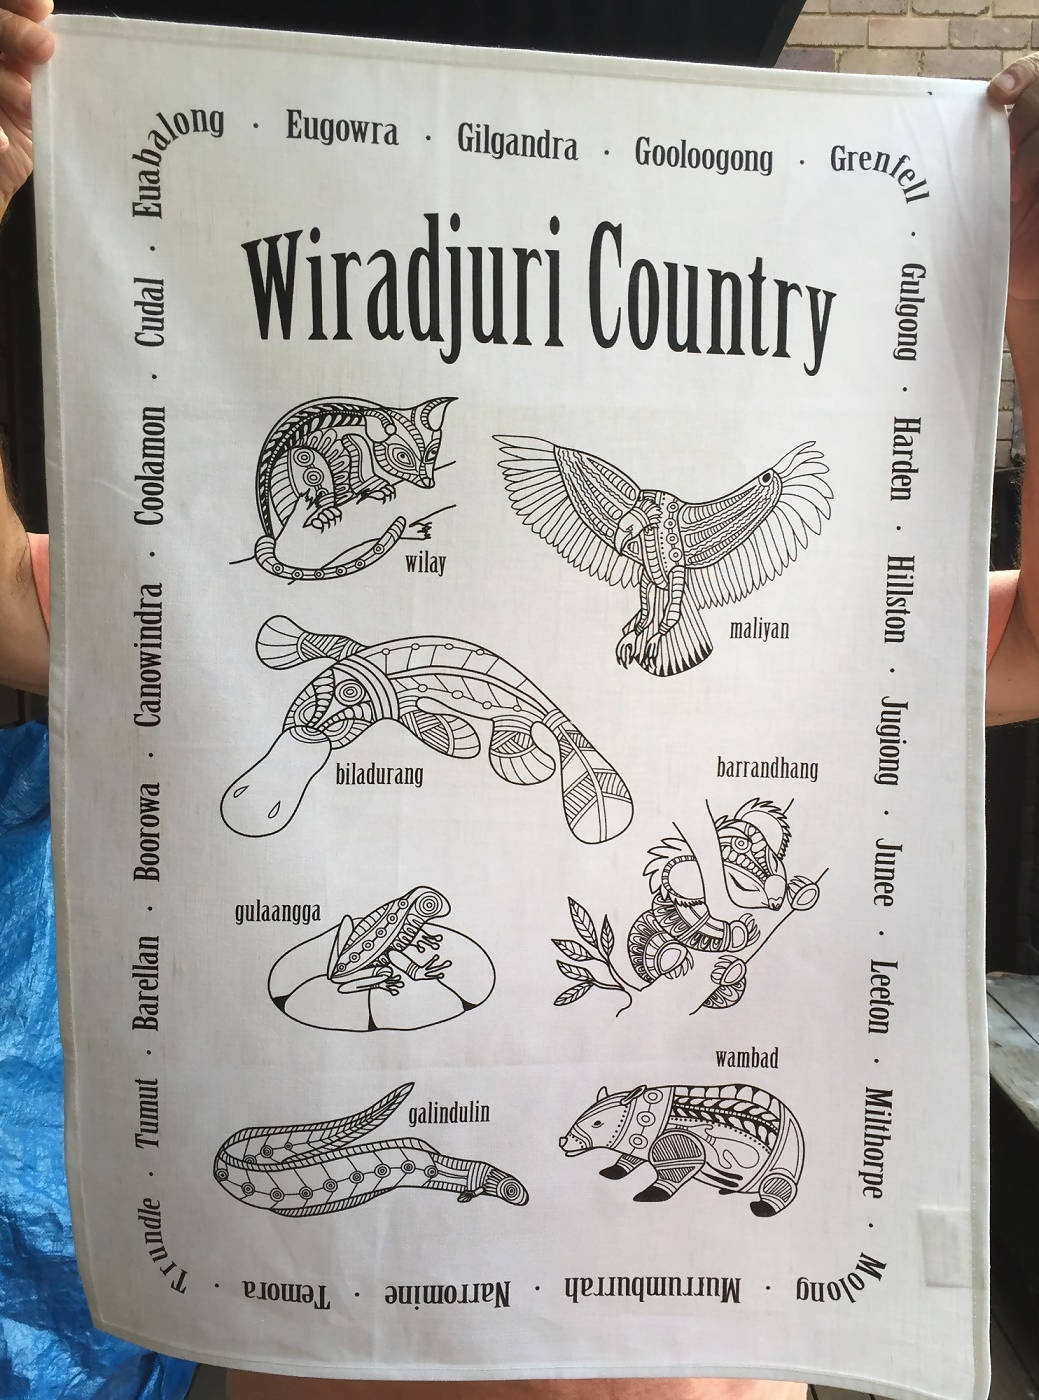 Wiradjuri tea towel with small towns